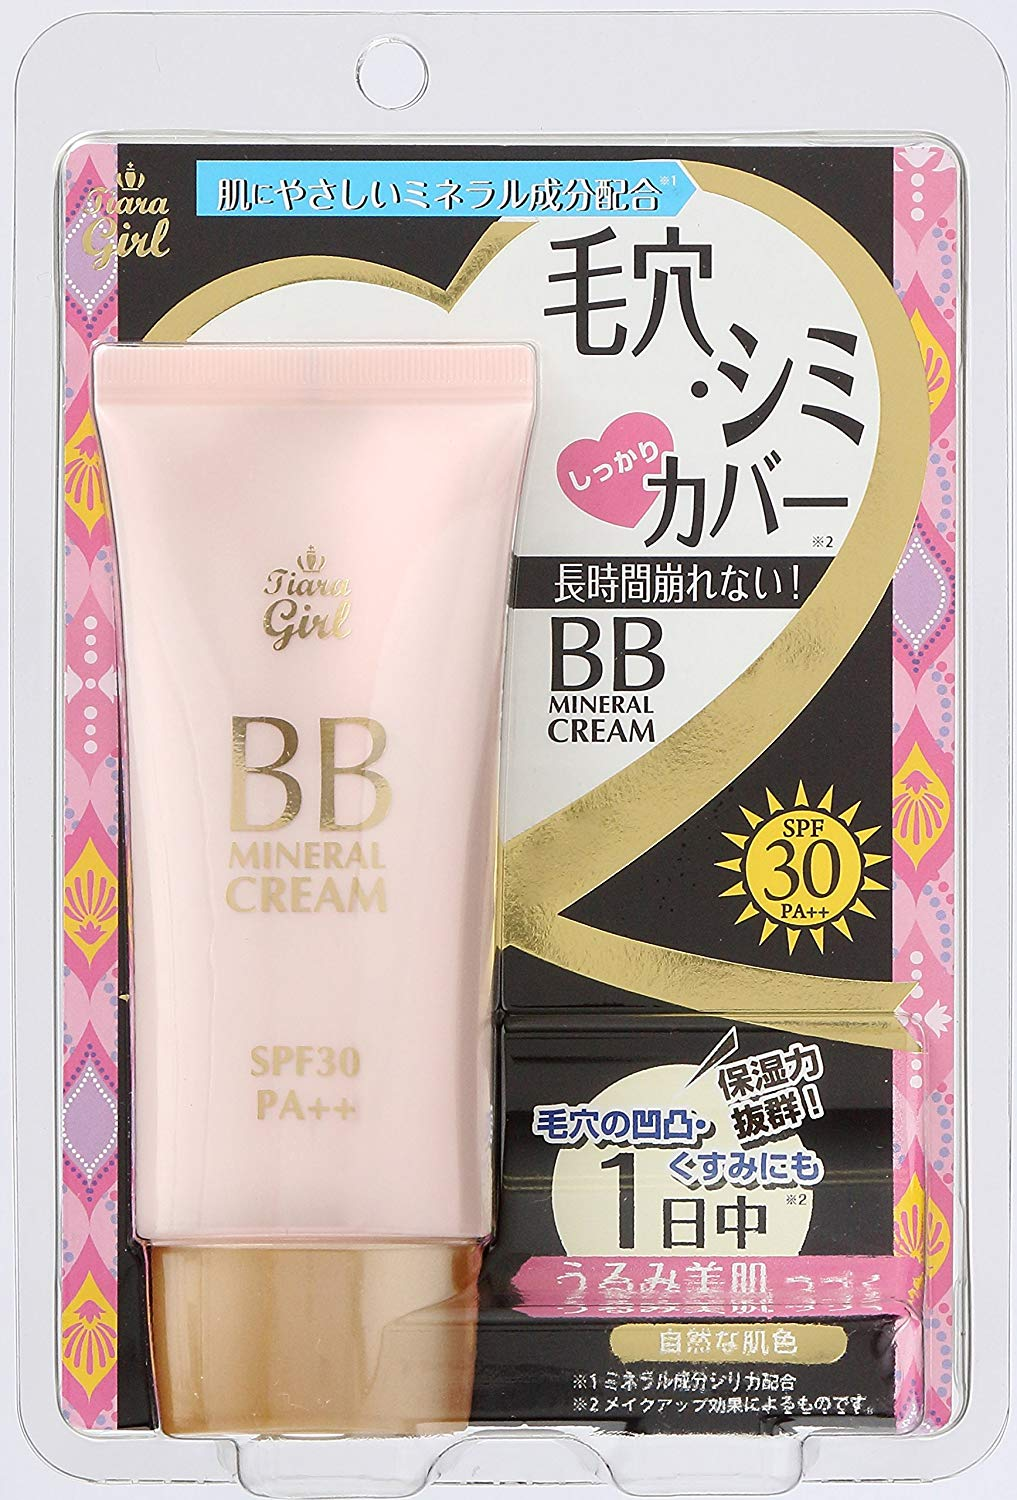 MYM TIARA GIRL BB CREAM 50g SPF30 PA++ FOUNDATION